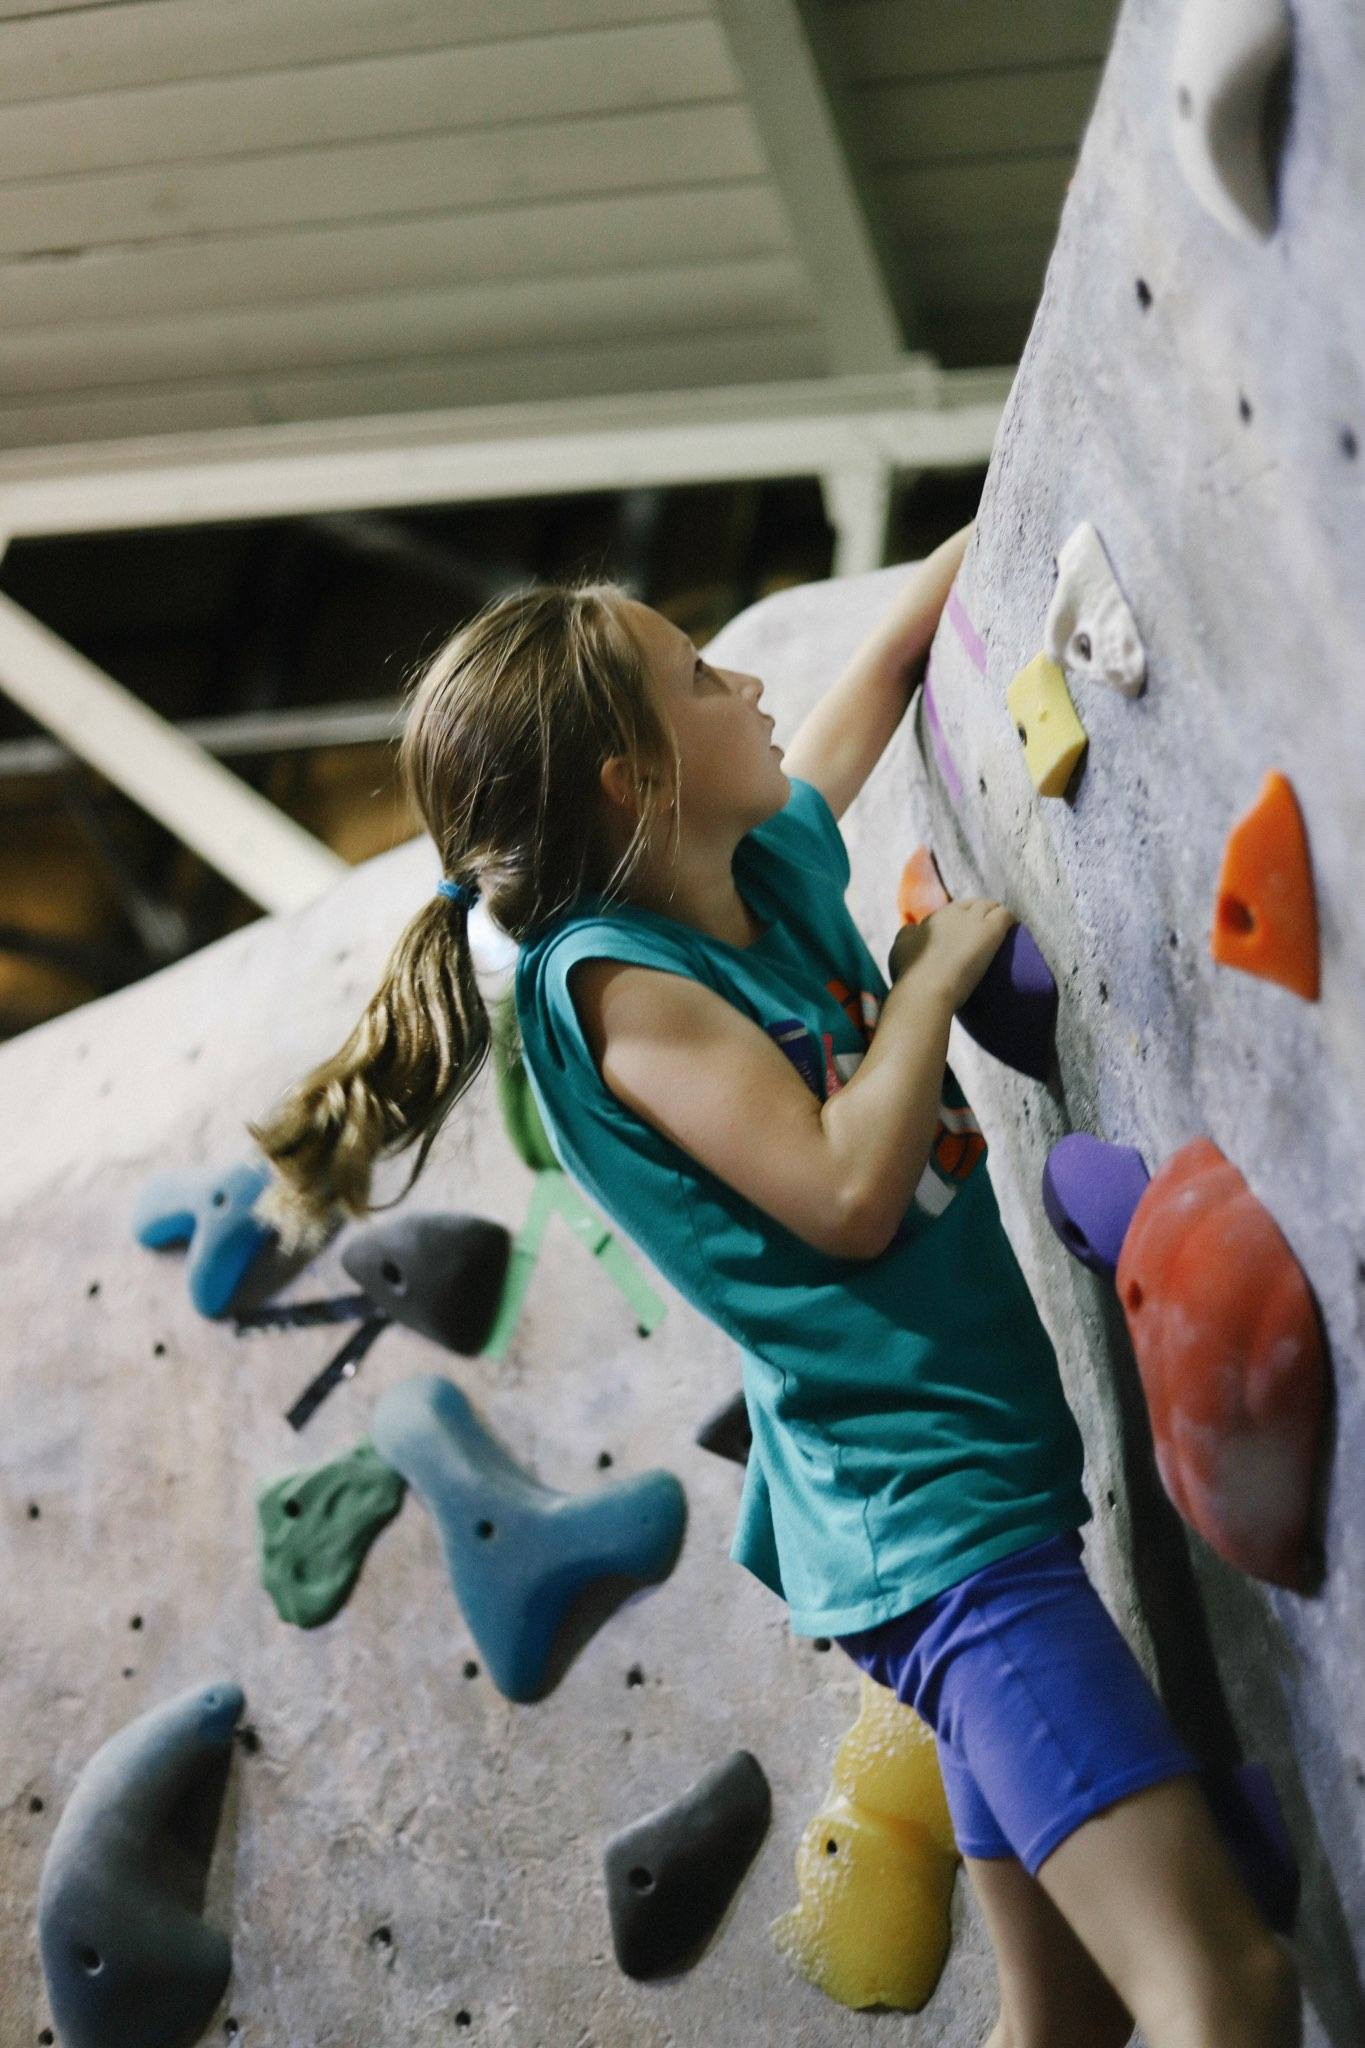 Hone Problem Solving Skills - Every climb is a puzzle waiting to be solved. Youth will learn critical thinking skills and visualization techniques to master their projects.